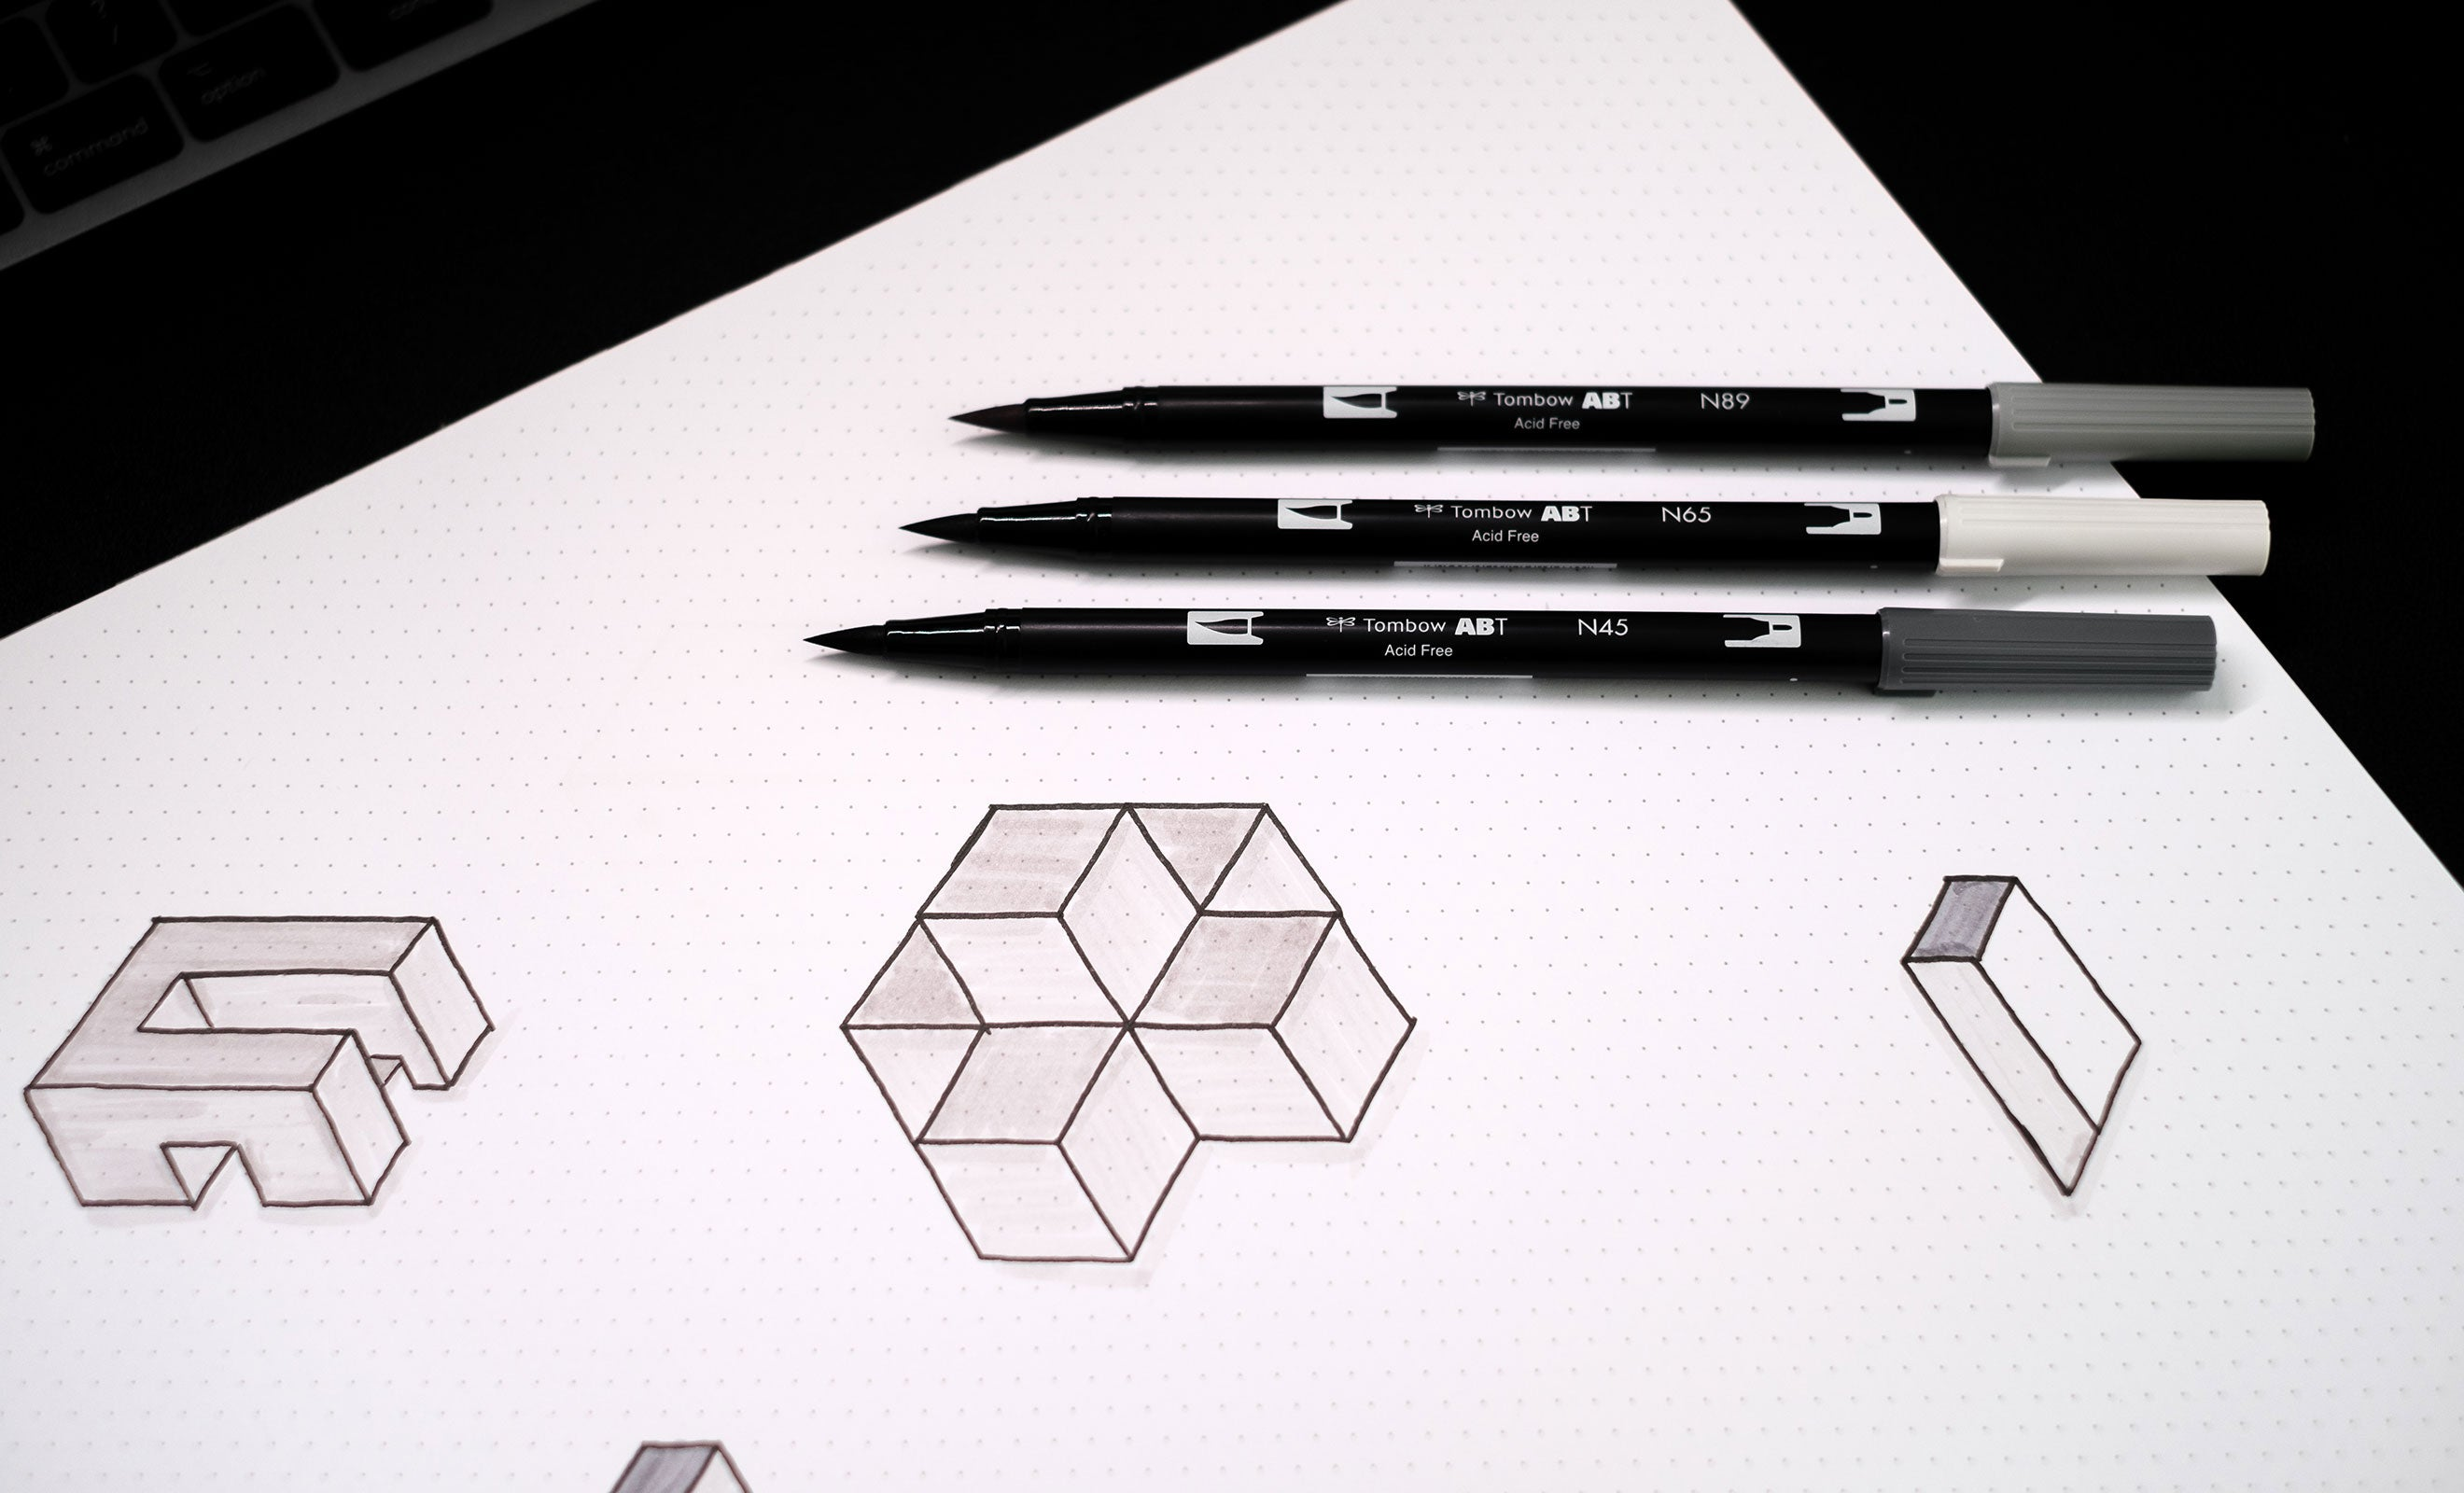 The ultimate tool for drawing